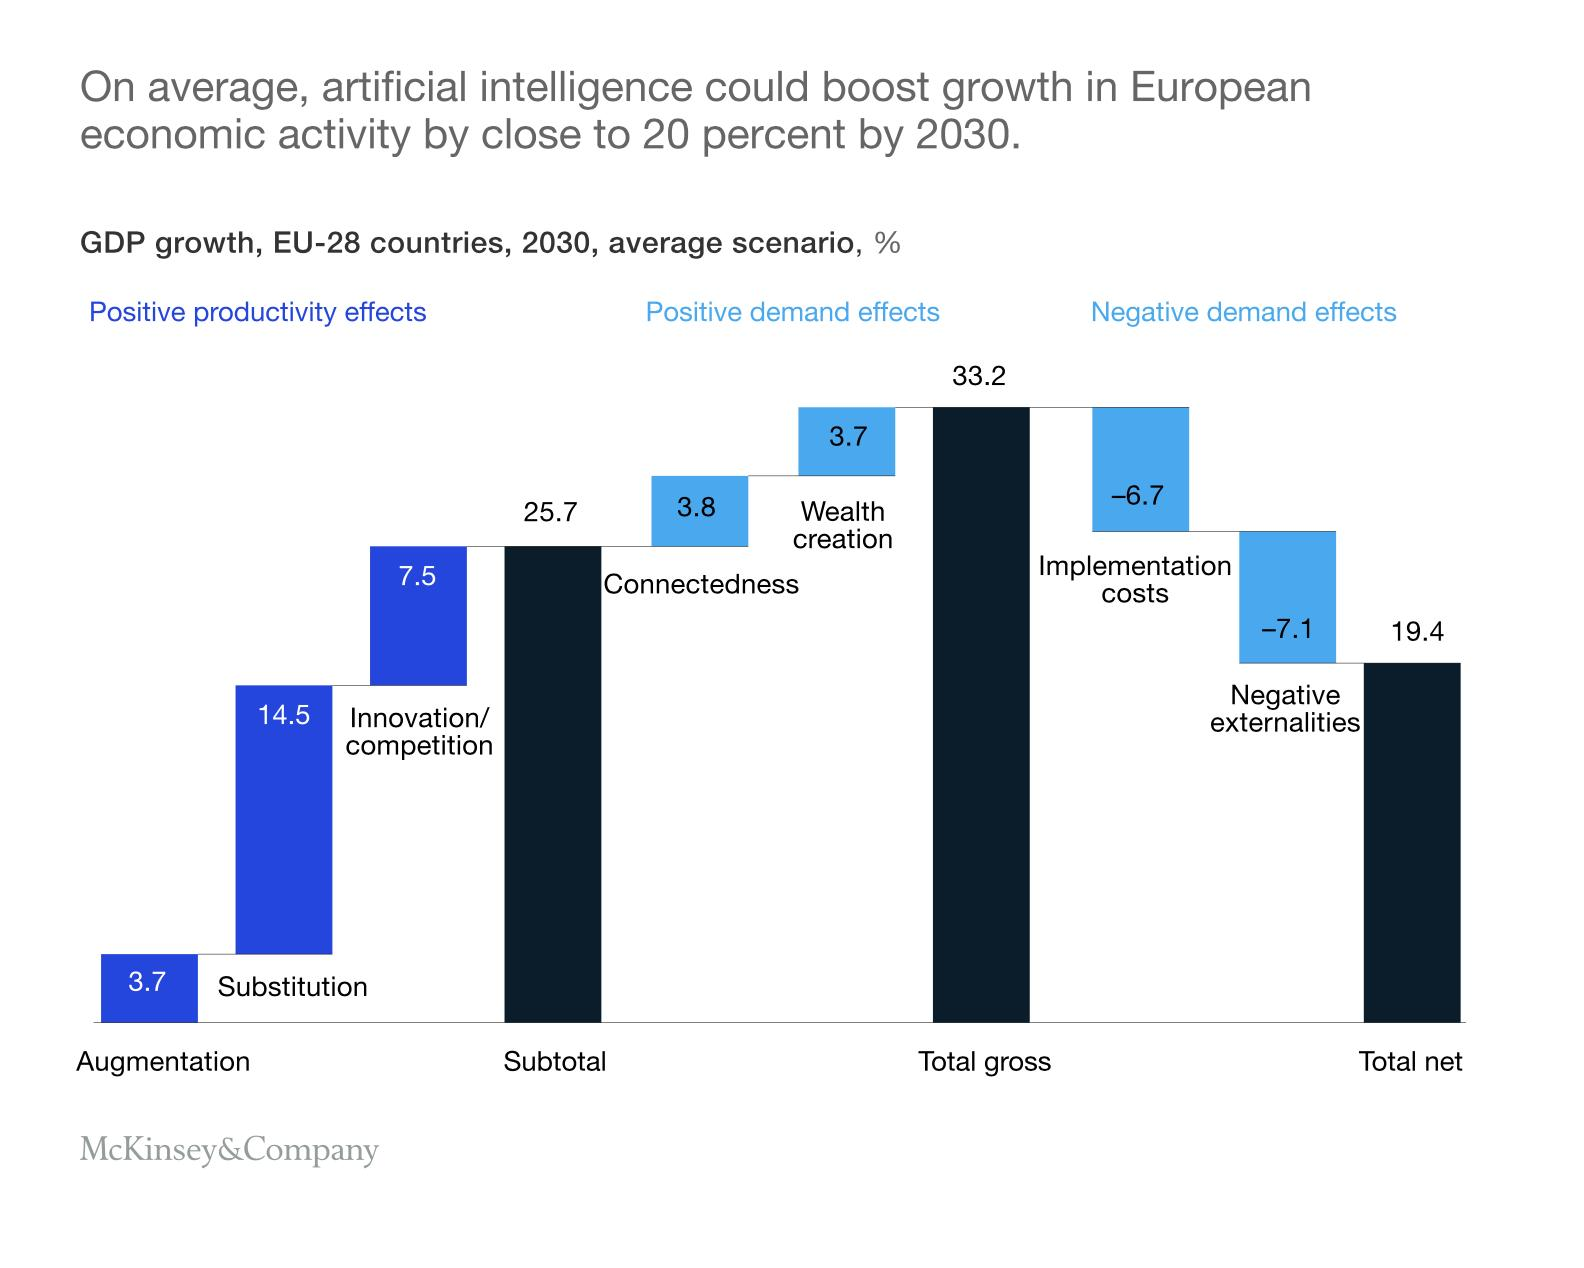 If Europe develops and diffuses AI according to its current assets and digital position, it could add some €2.7 trillion, or 20 percent, to its combined economy output, resulting in 1.4 percent compound annual growth through 2030